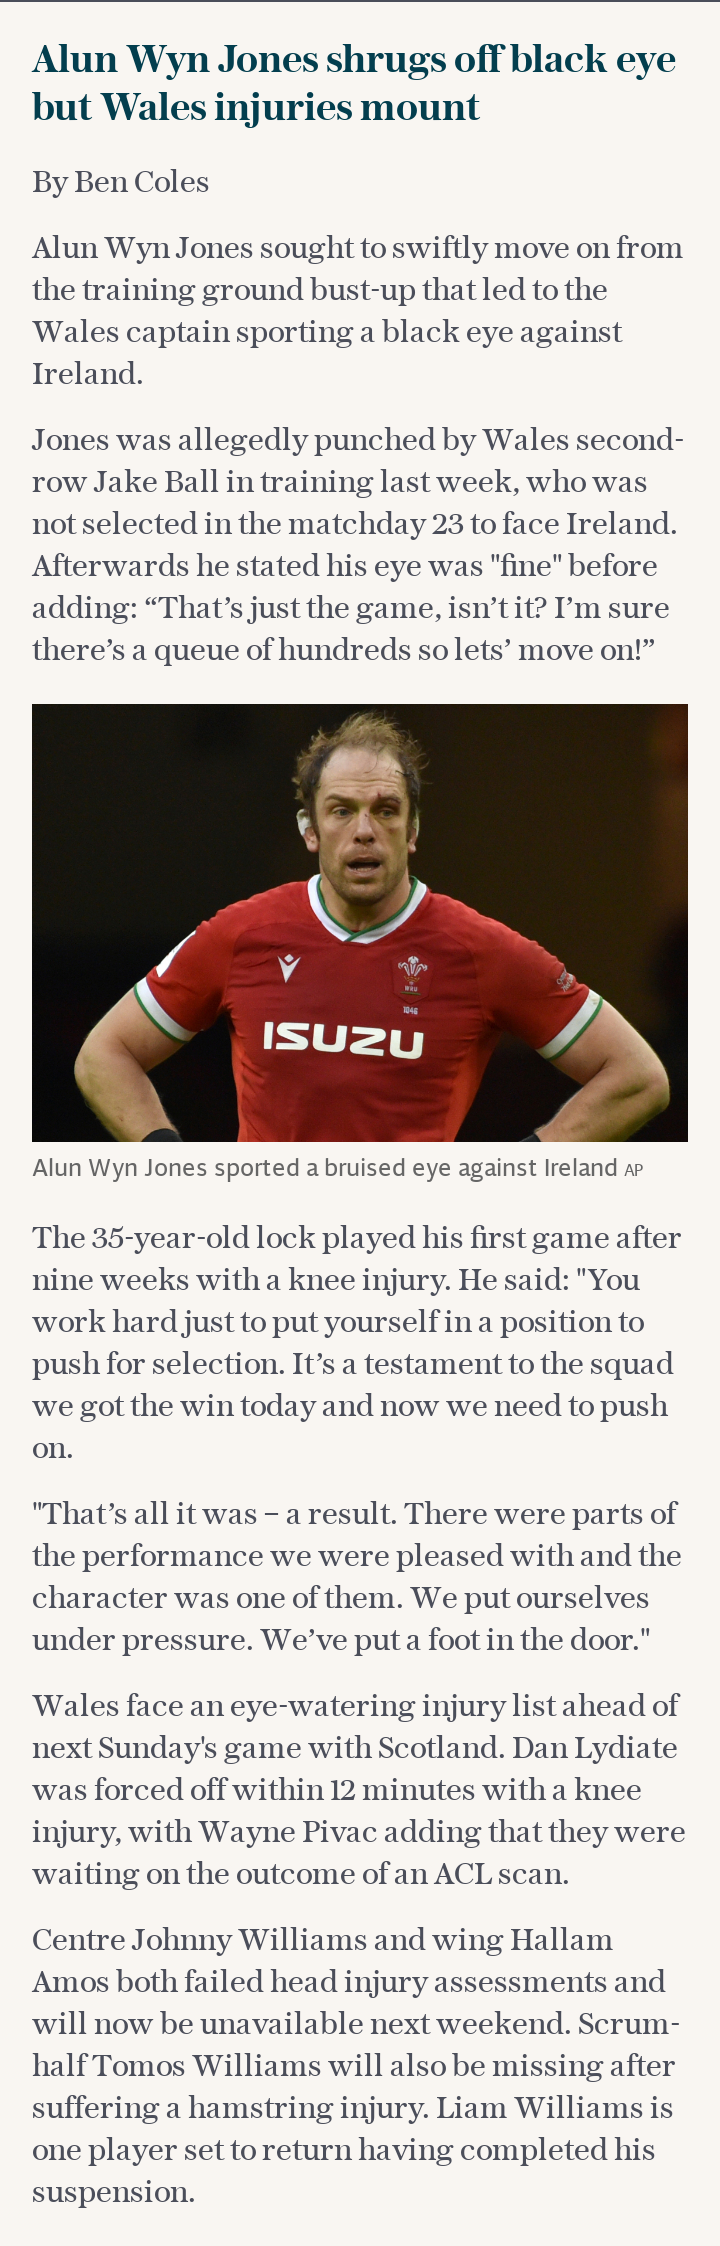 Alun Wyn Jones shrugs off black eye but Wales injuries mount